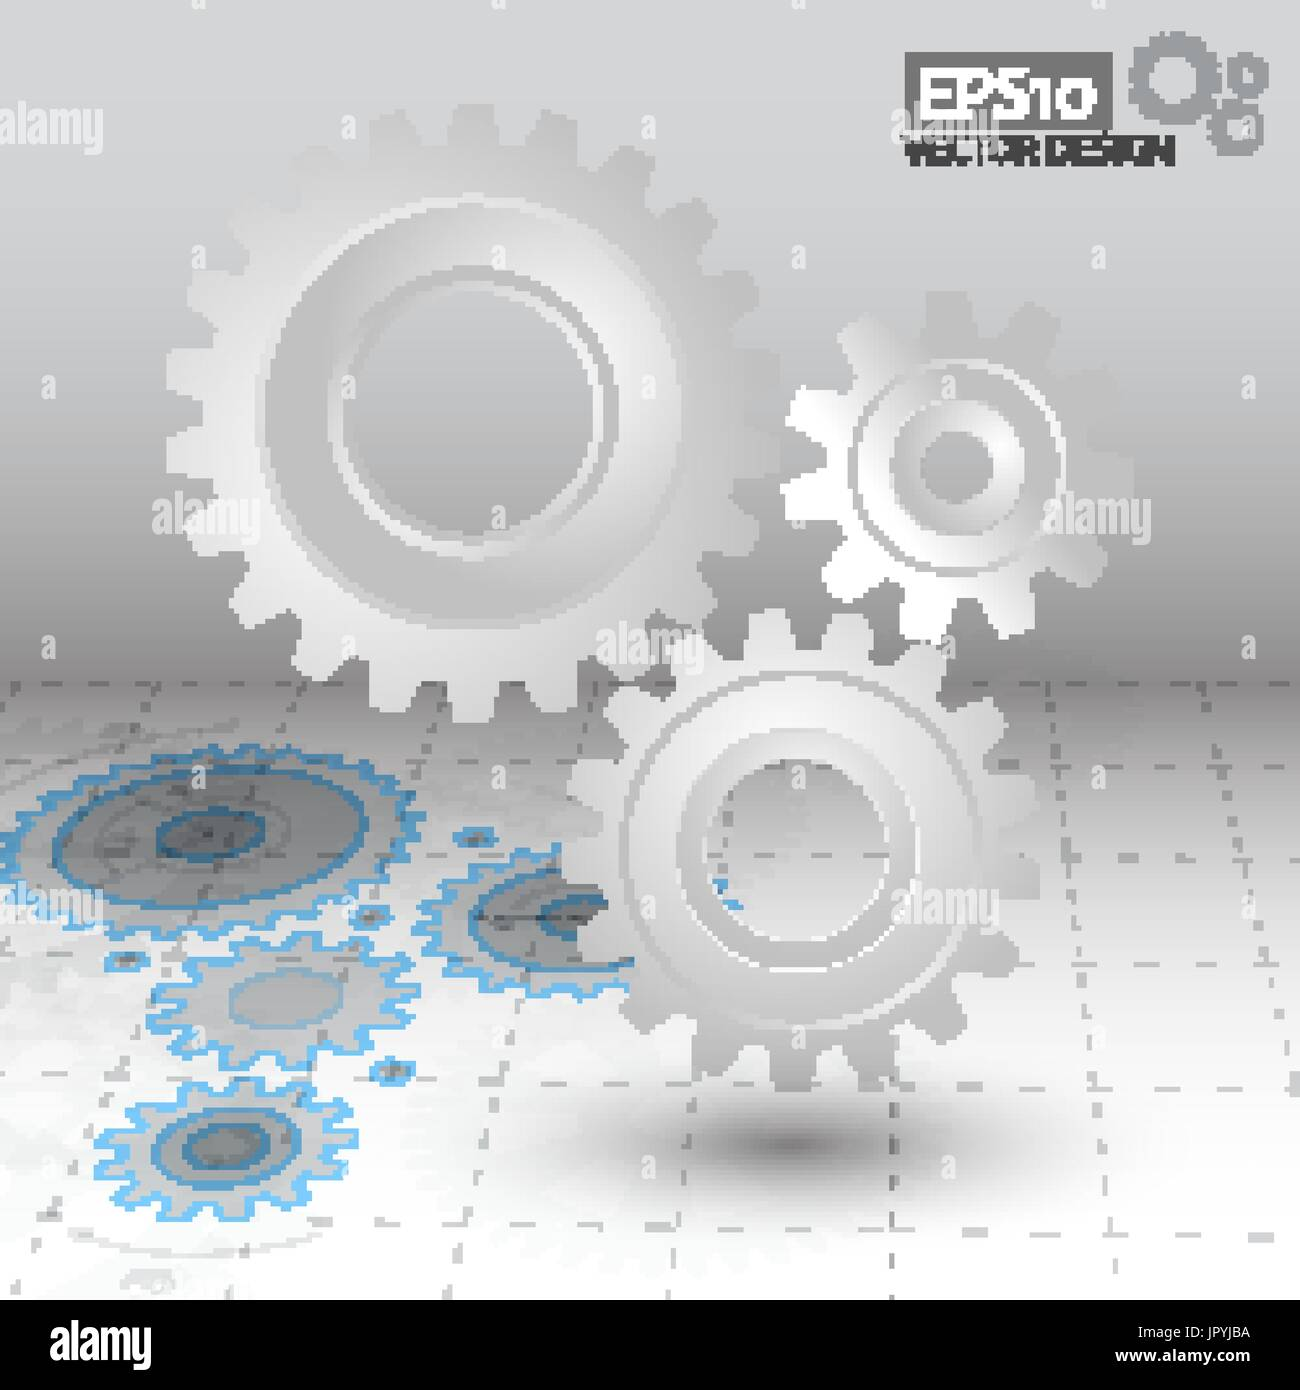 White 3d gears on the gray blueprint background infographic stock white 3d gears on the gray blueprint background infographic template cover template vector design eps10 malvernweather Gallery